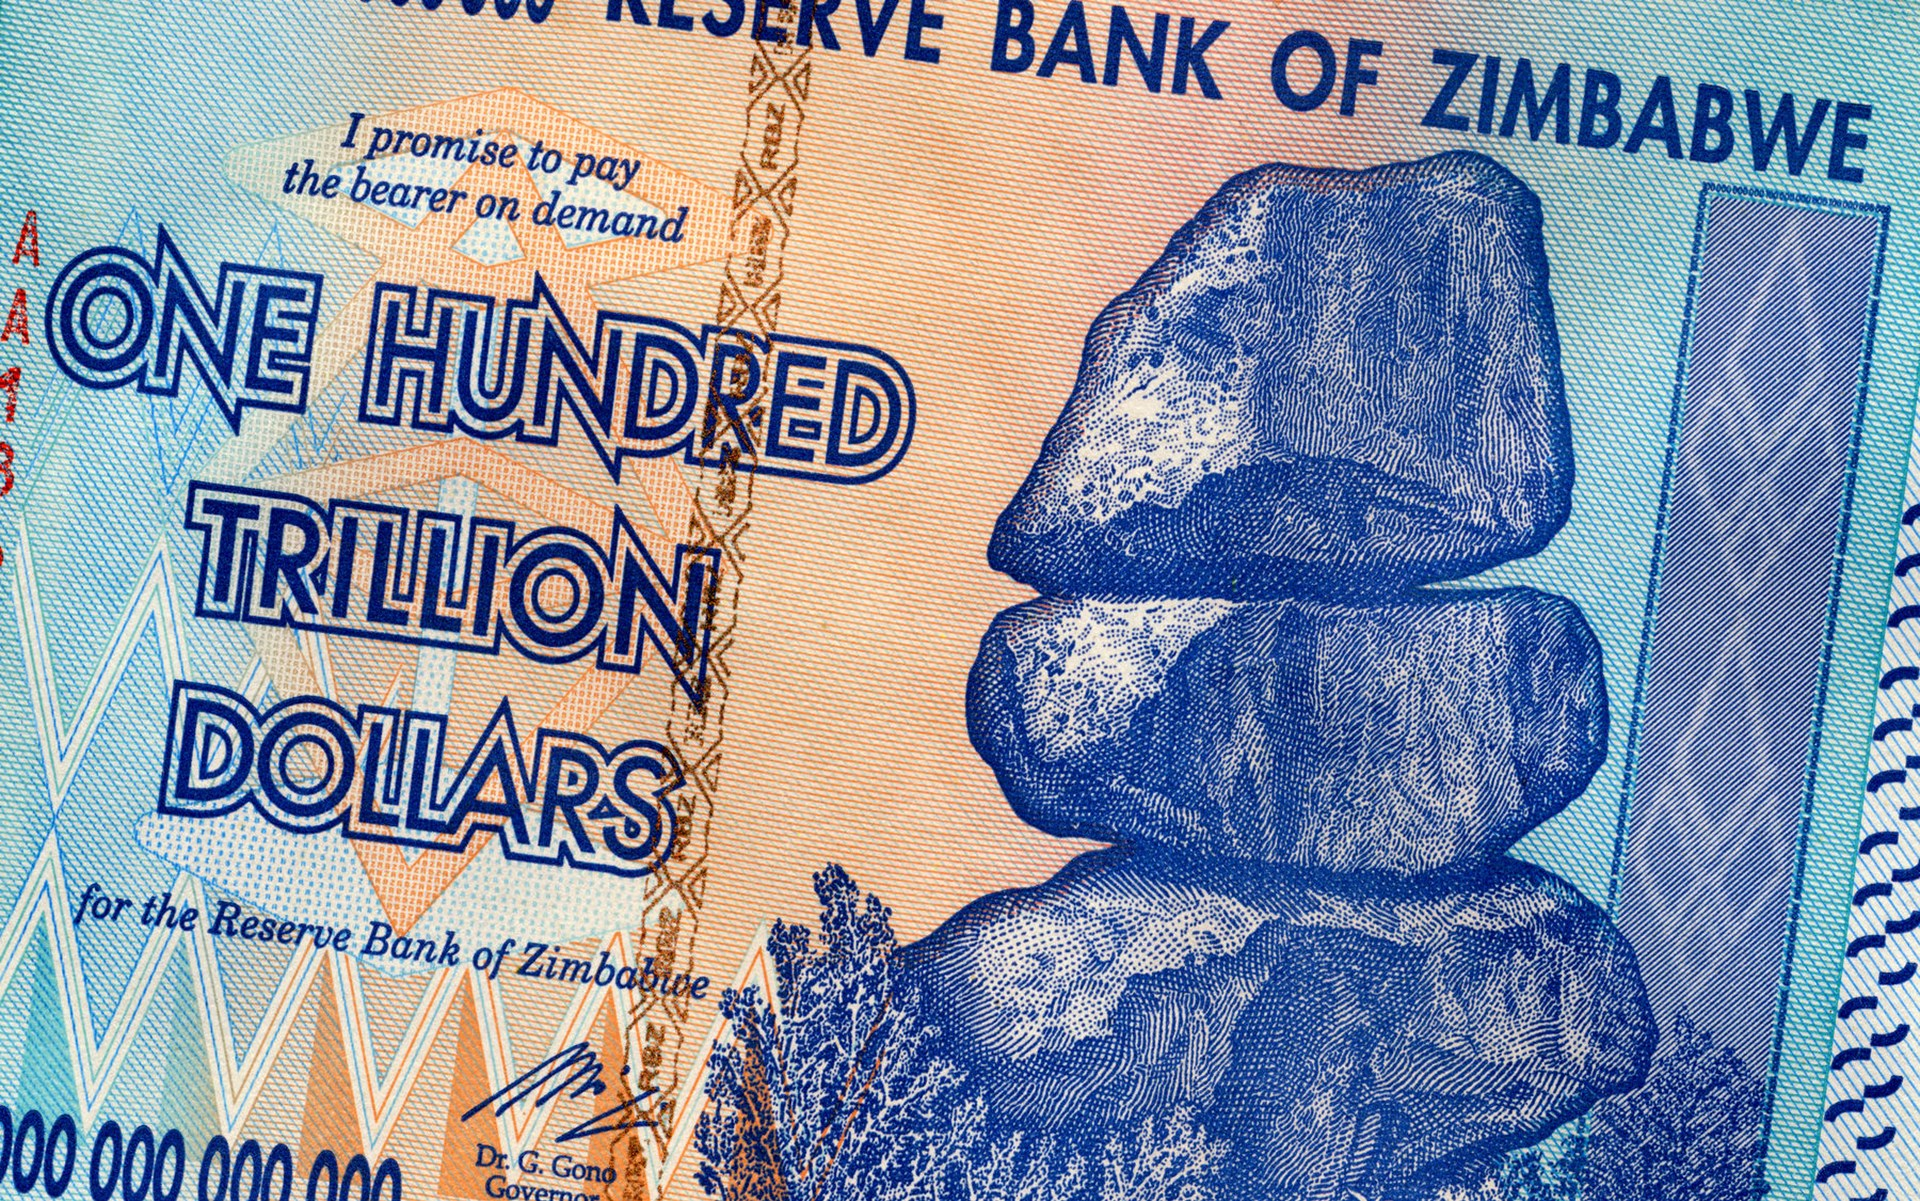 Monetizing the Debt Would Create Hyperinflation  Let's Not